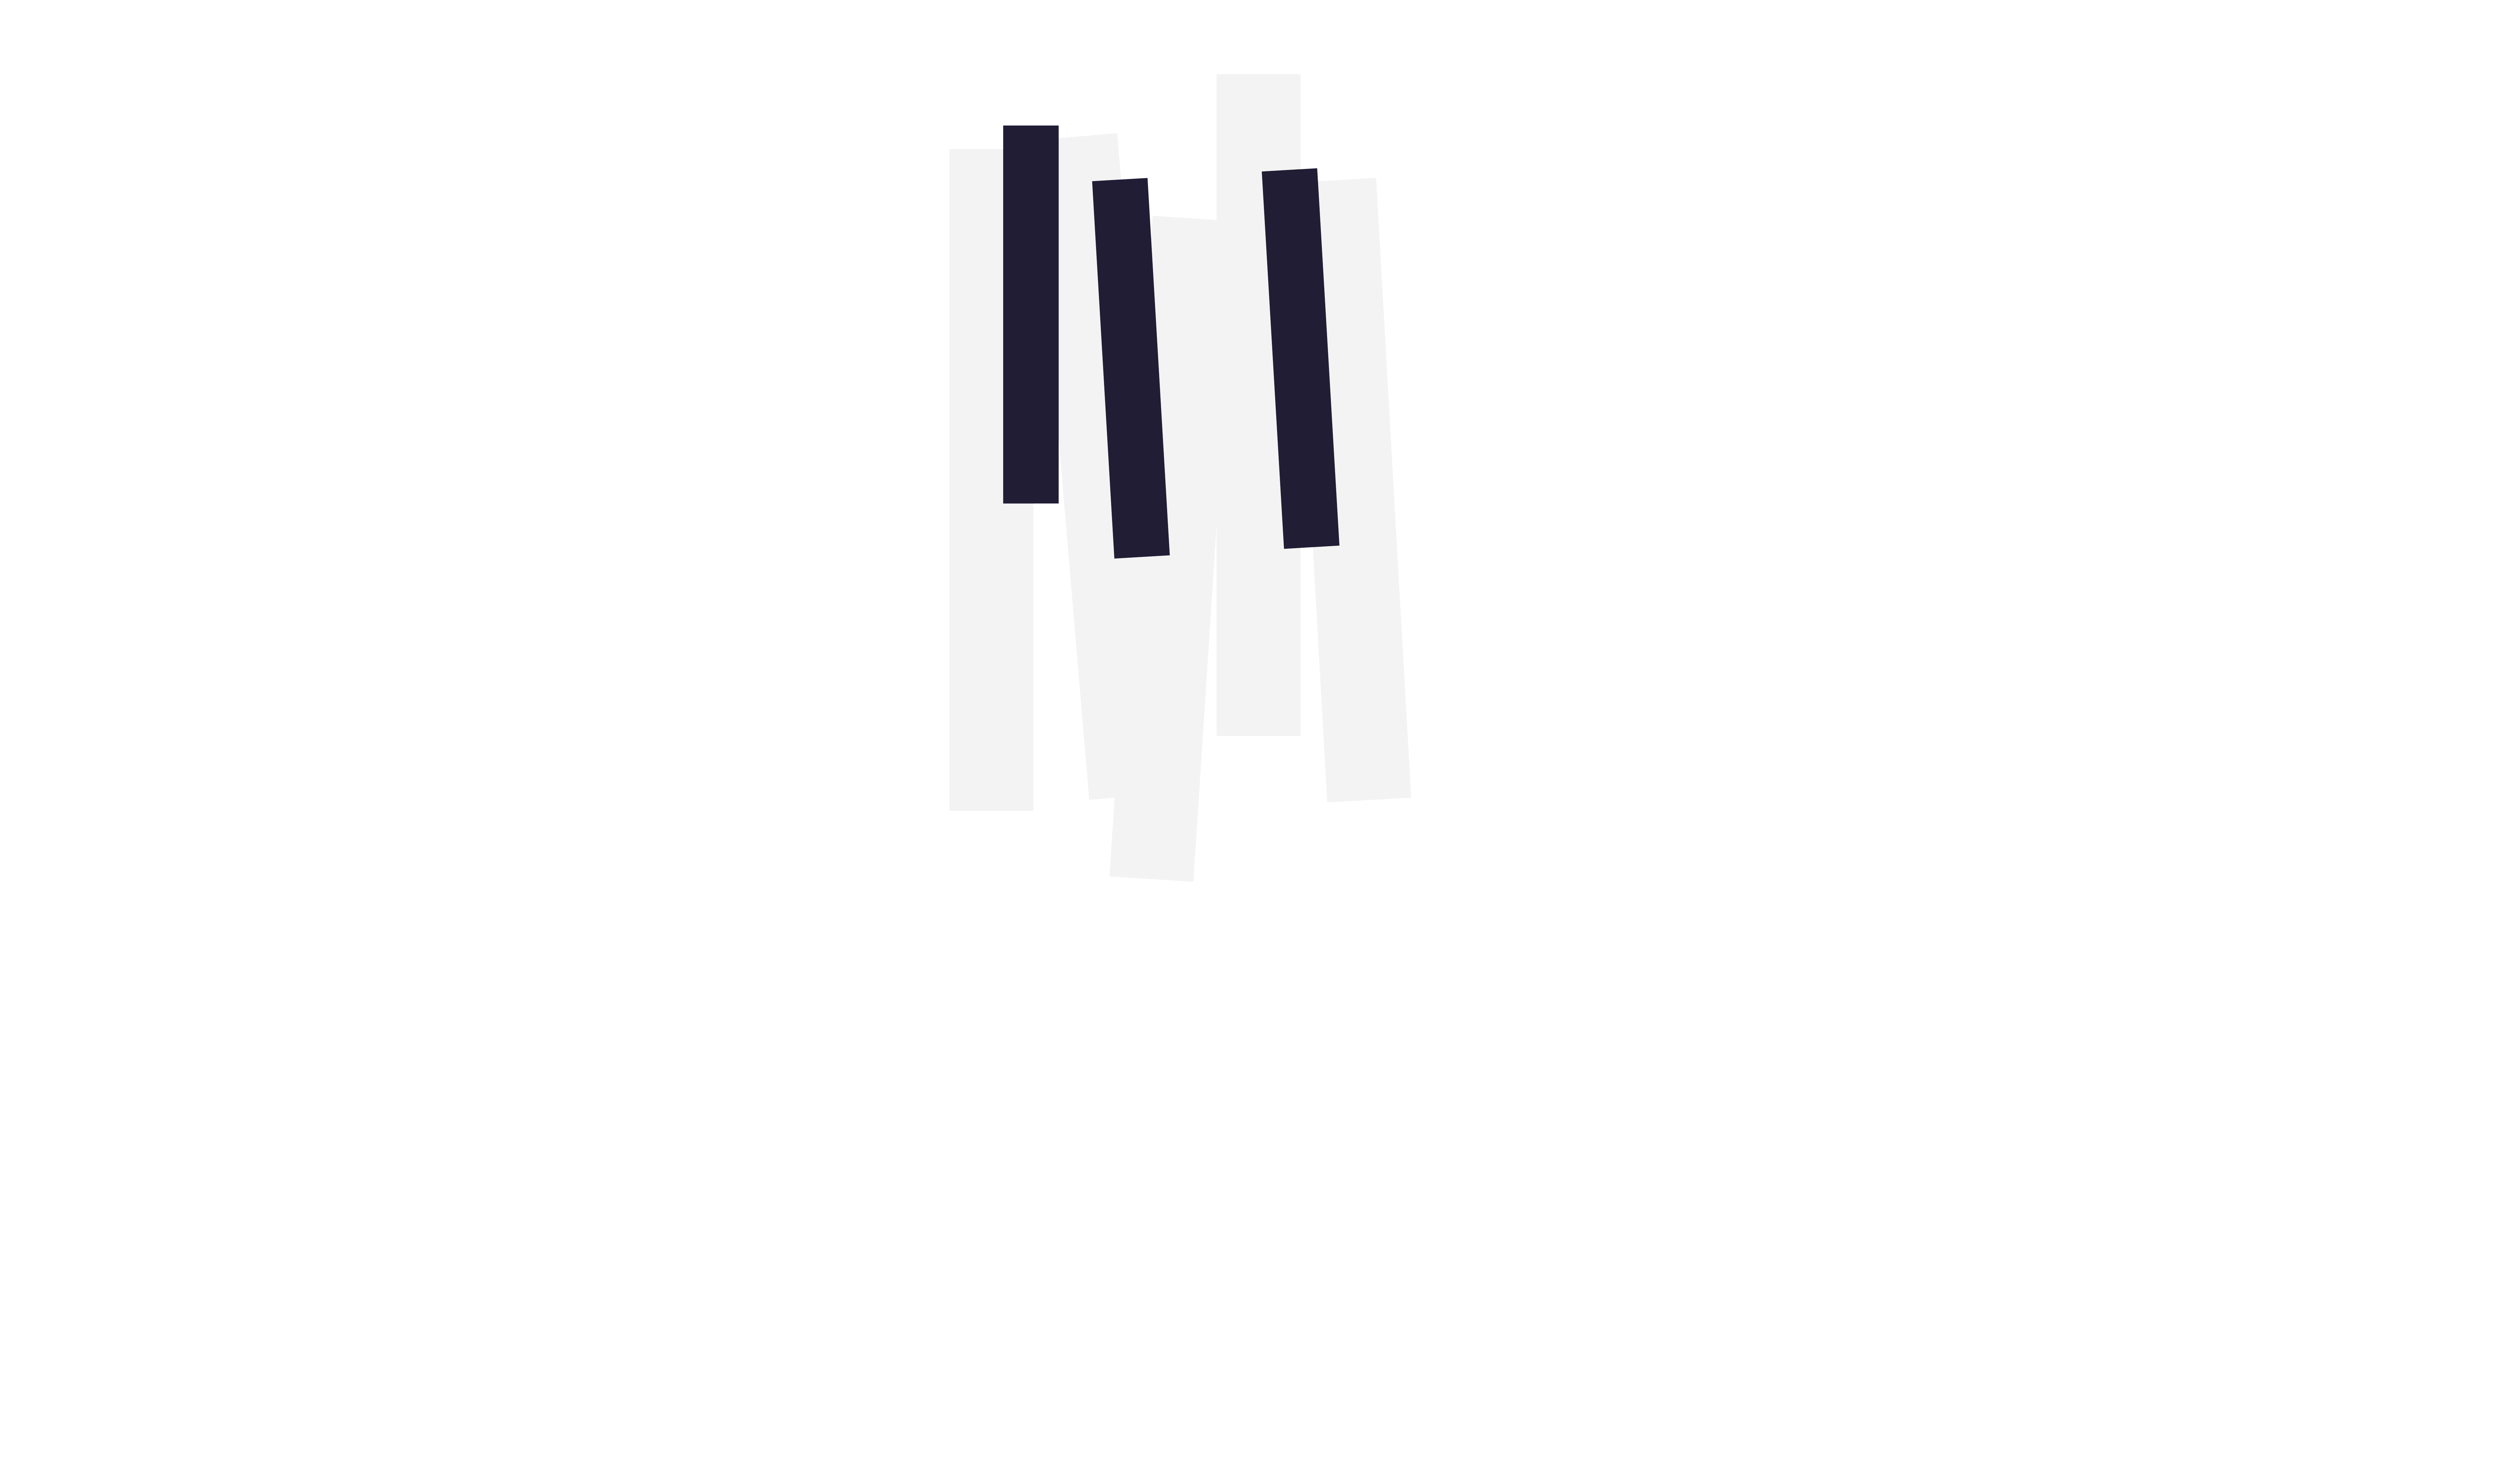 Gracenote Classical Academy of Music